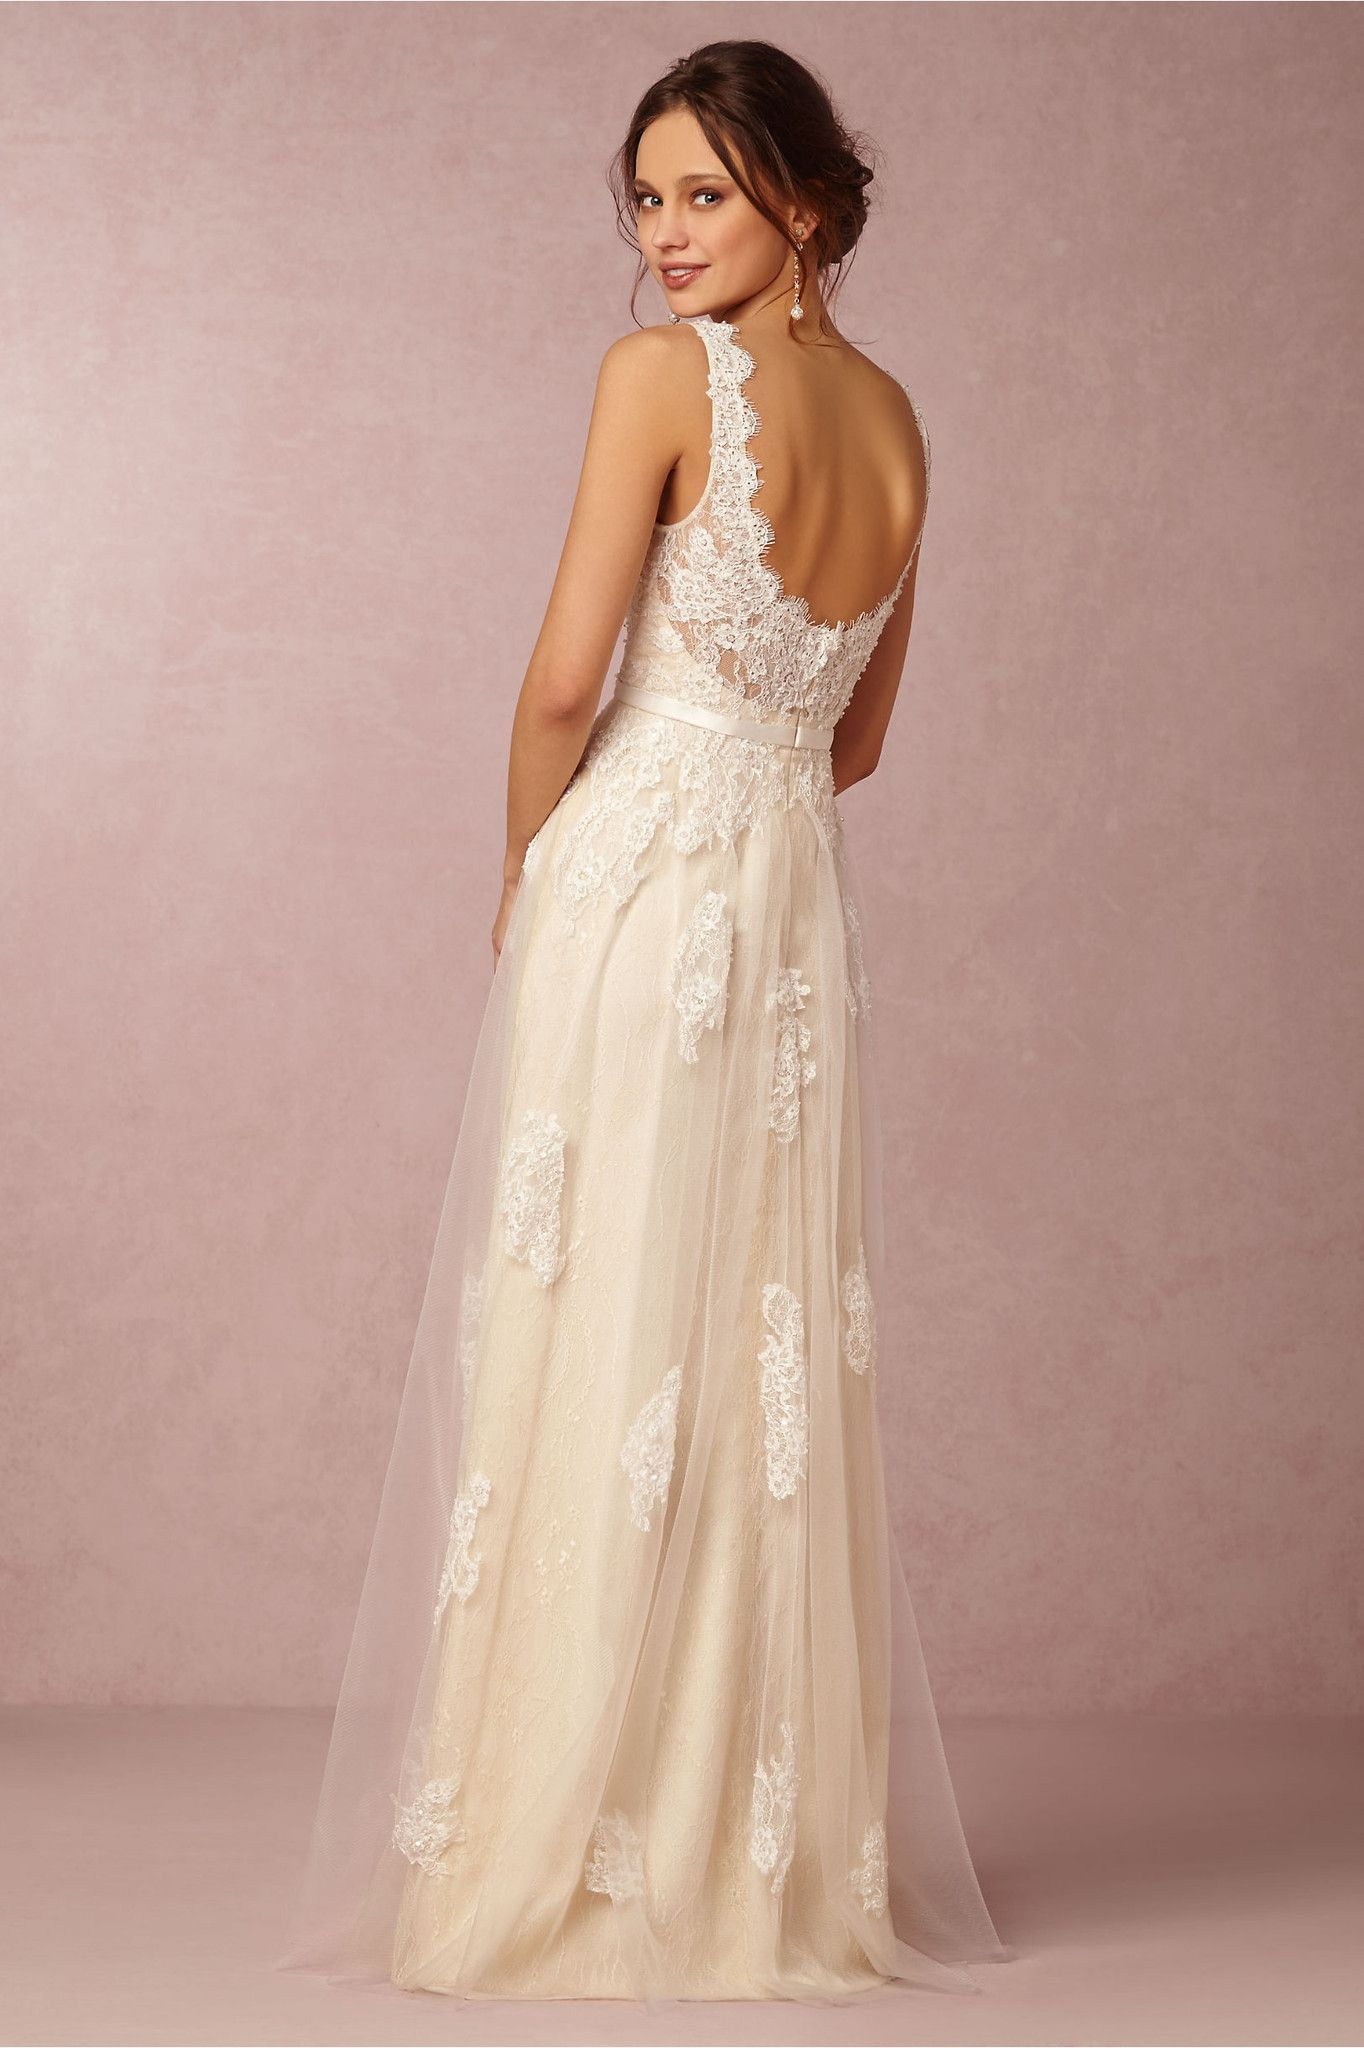 BHLDN \'Georgia\' size 10 new wedding dress - Nearly Newlywed | Ever ...